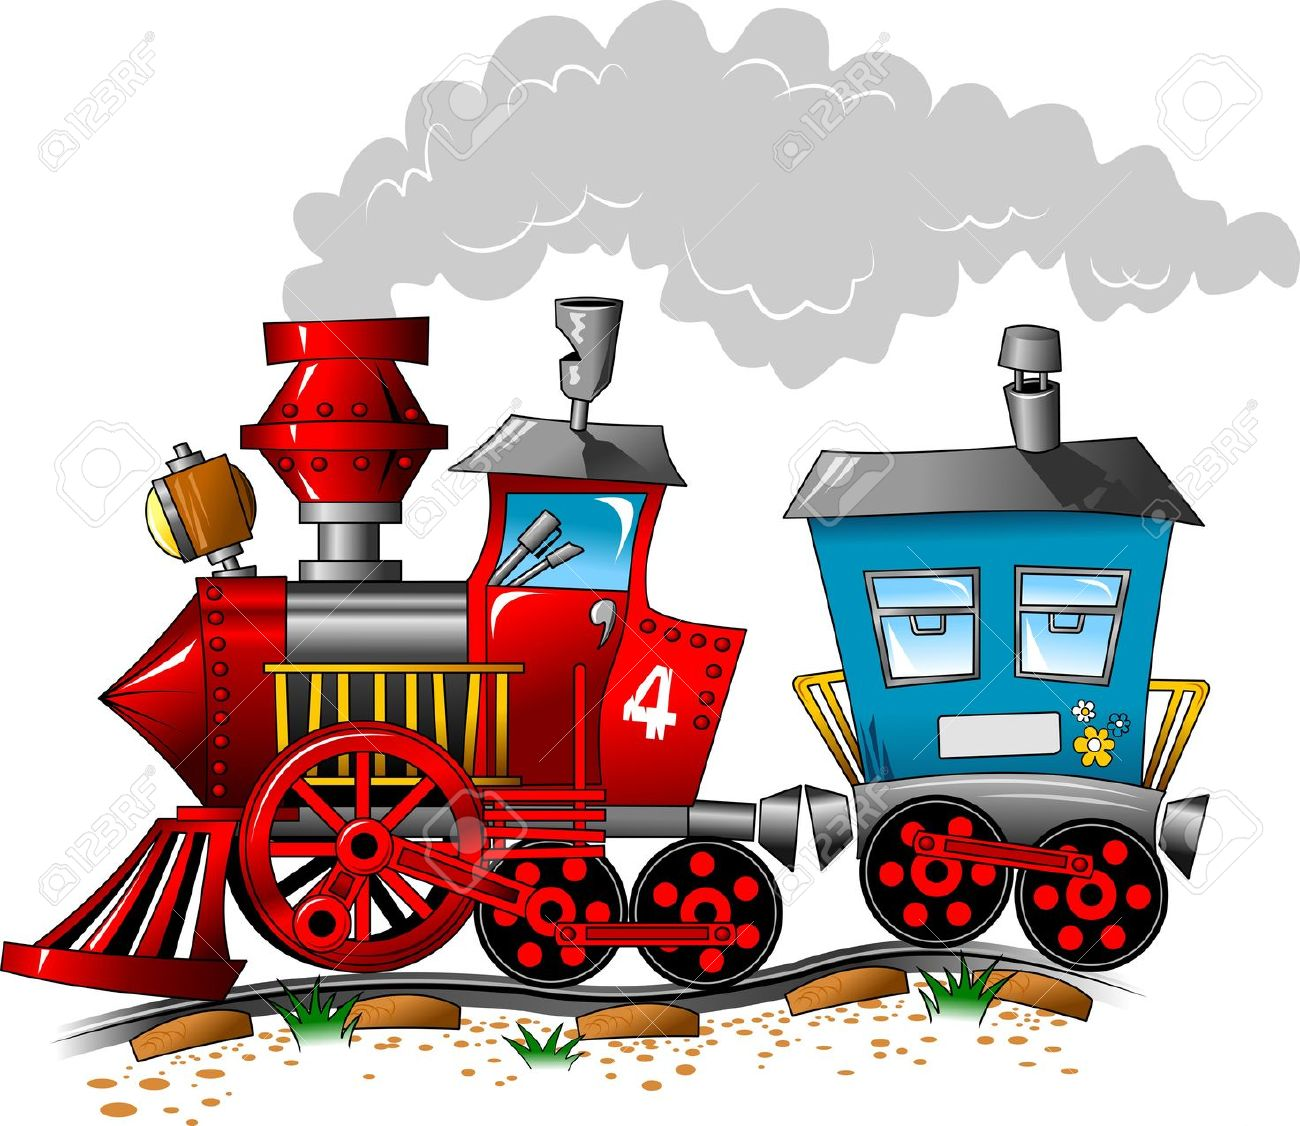 1300x1126 Train Cartoon Images, Stock Pictures, Royalty Free Train Cartoon